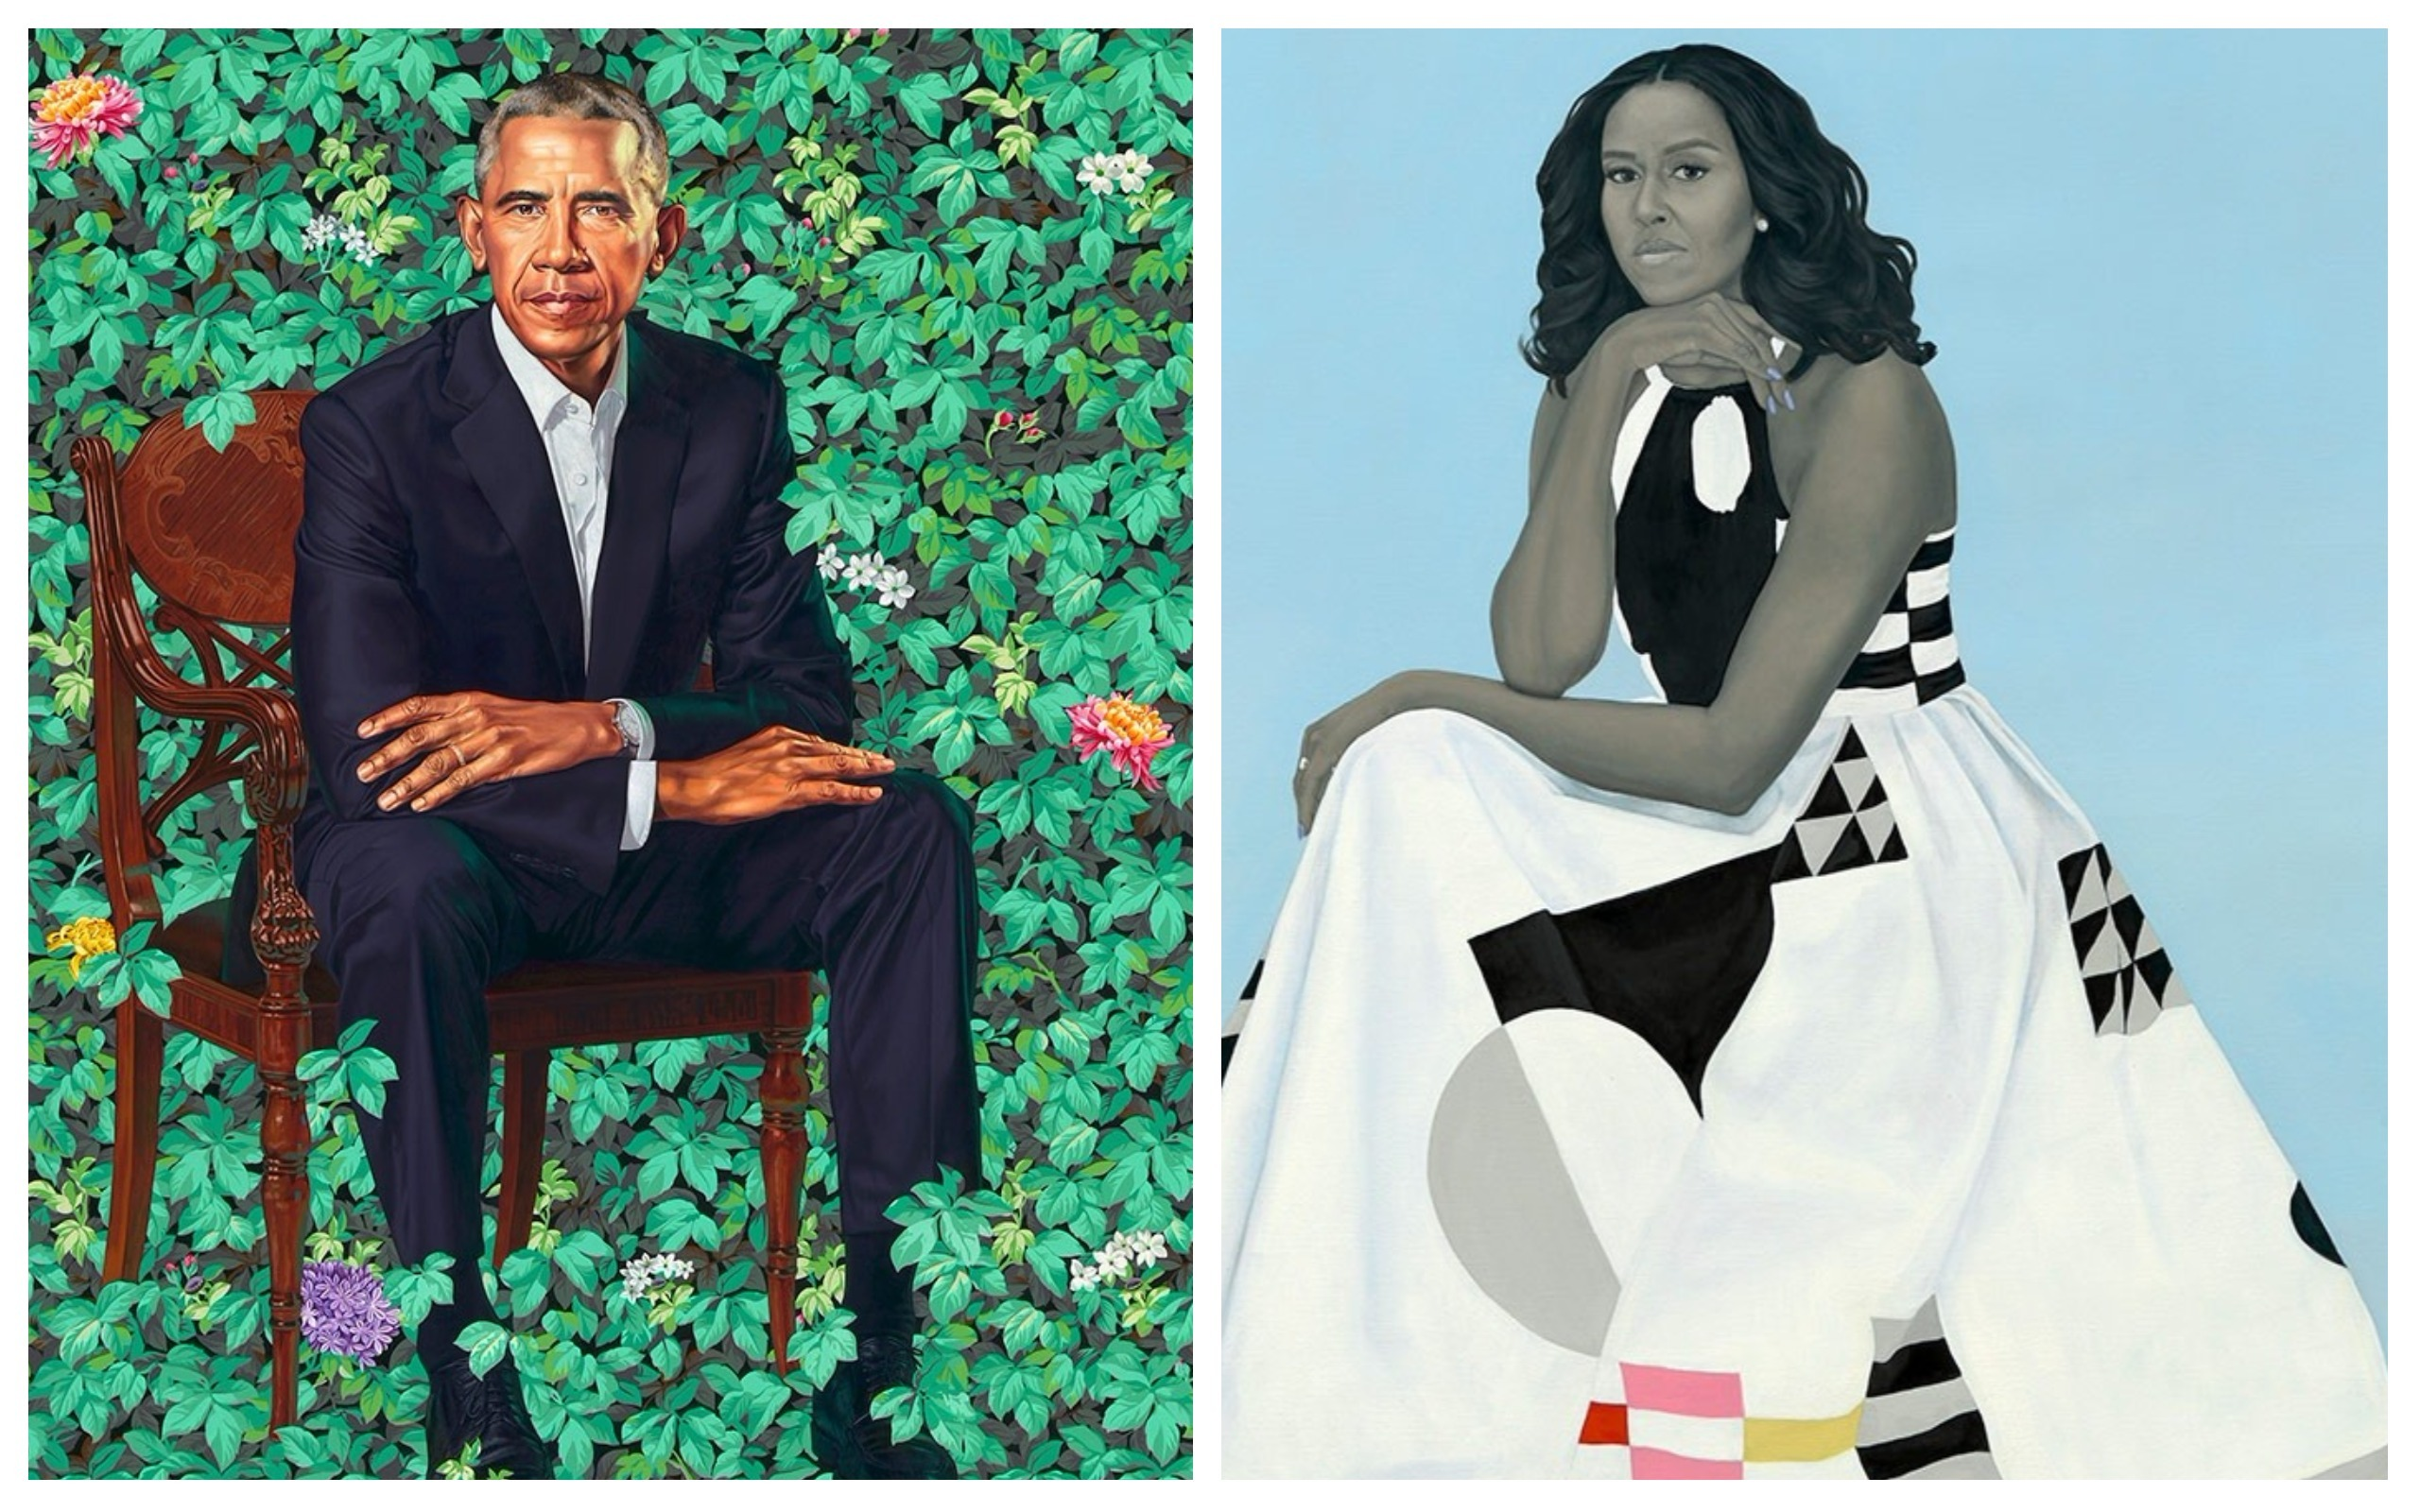 Let's Talk About the Official Obama Portraits | Awesomely Luvvie